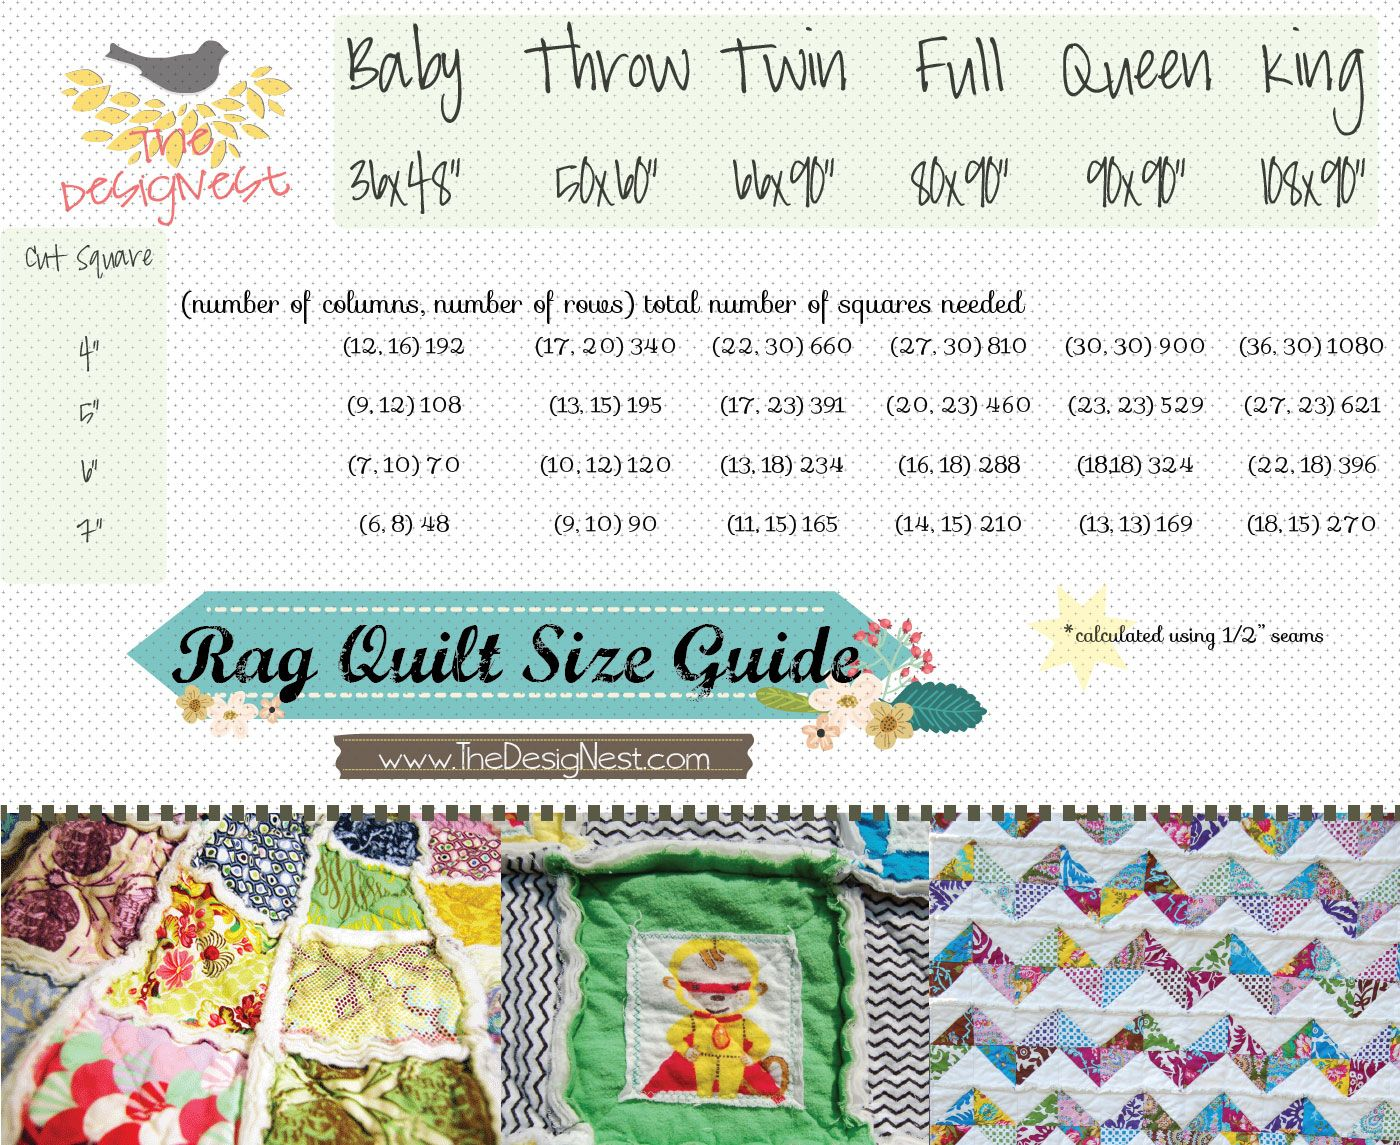 Rag Quilt Instructions Guide To Making The Size Quilt You Want